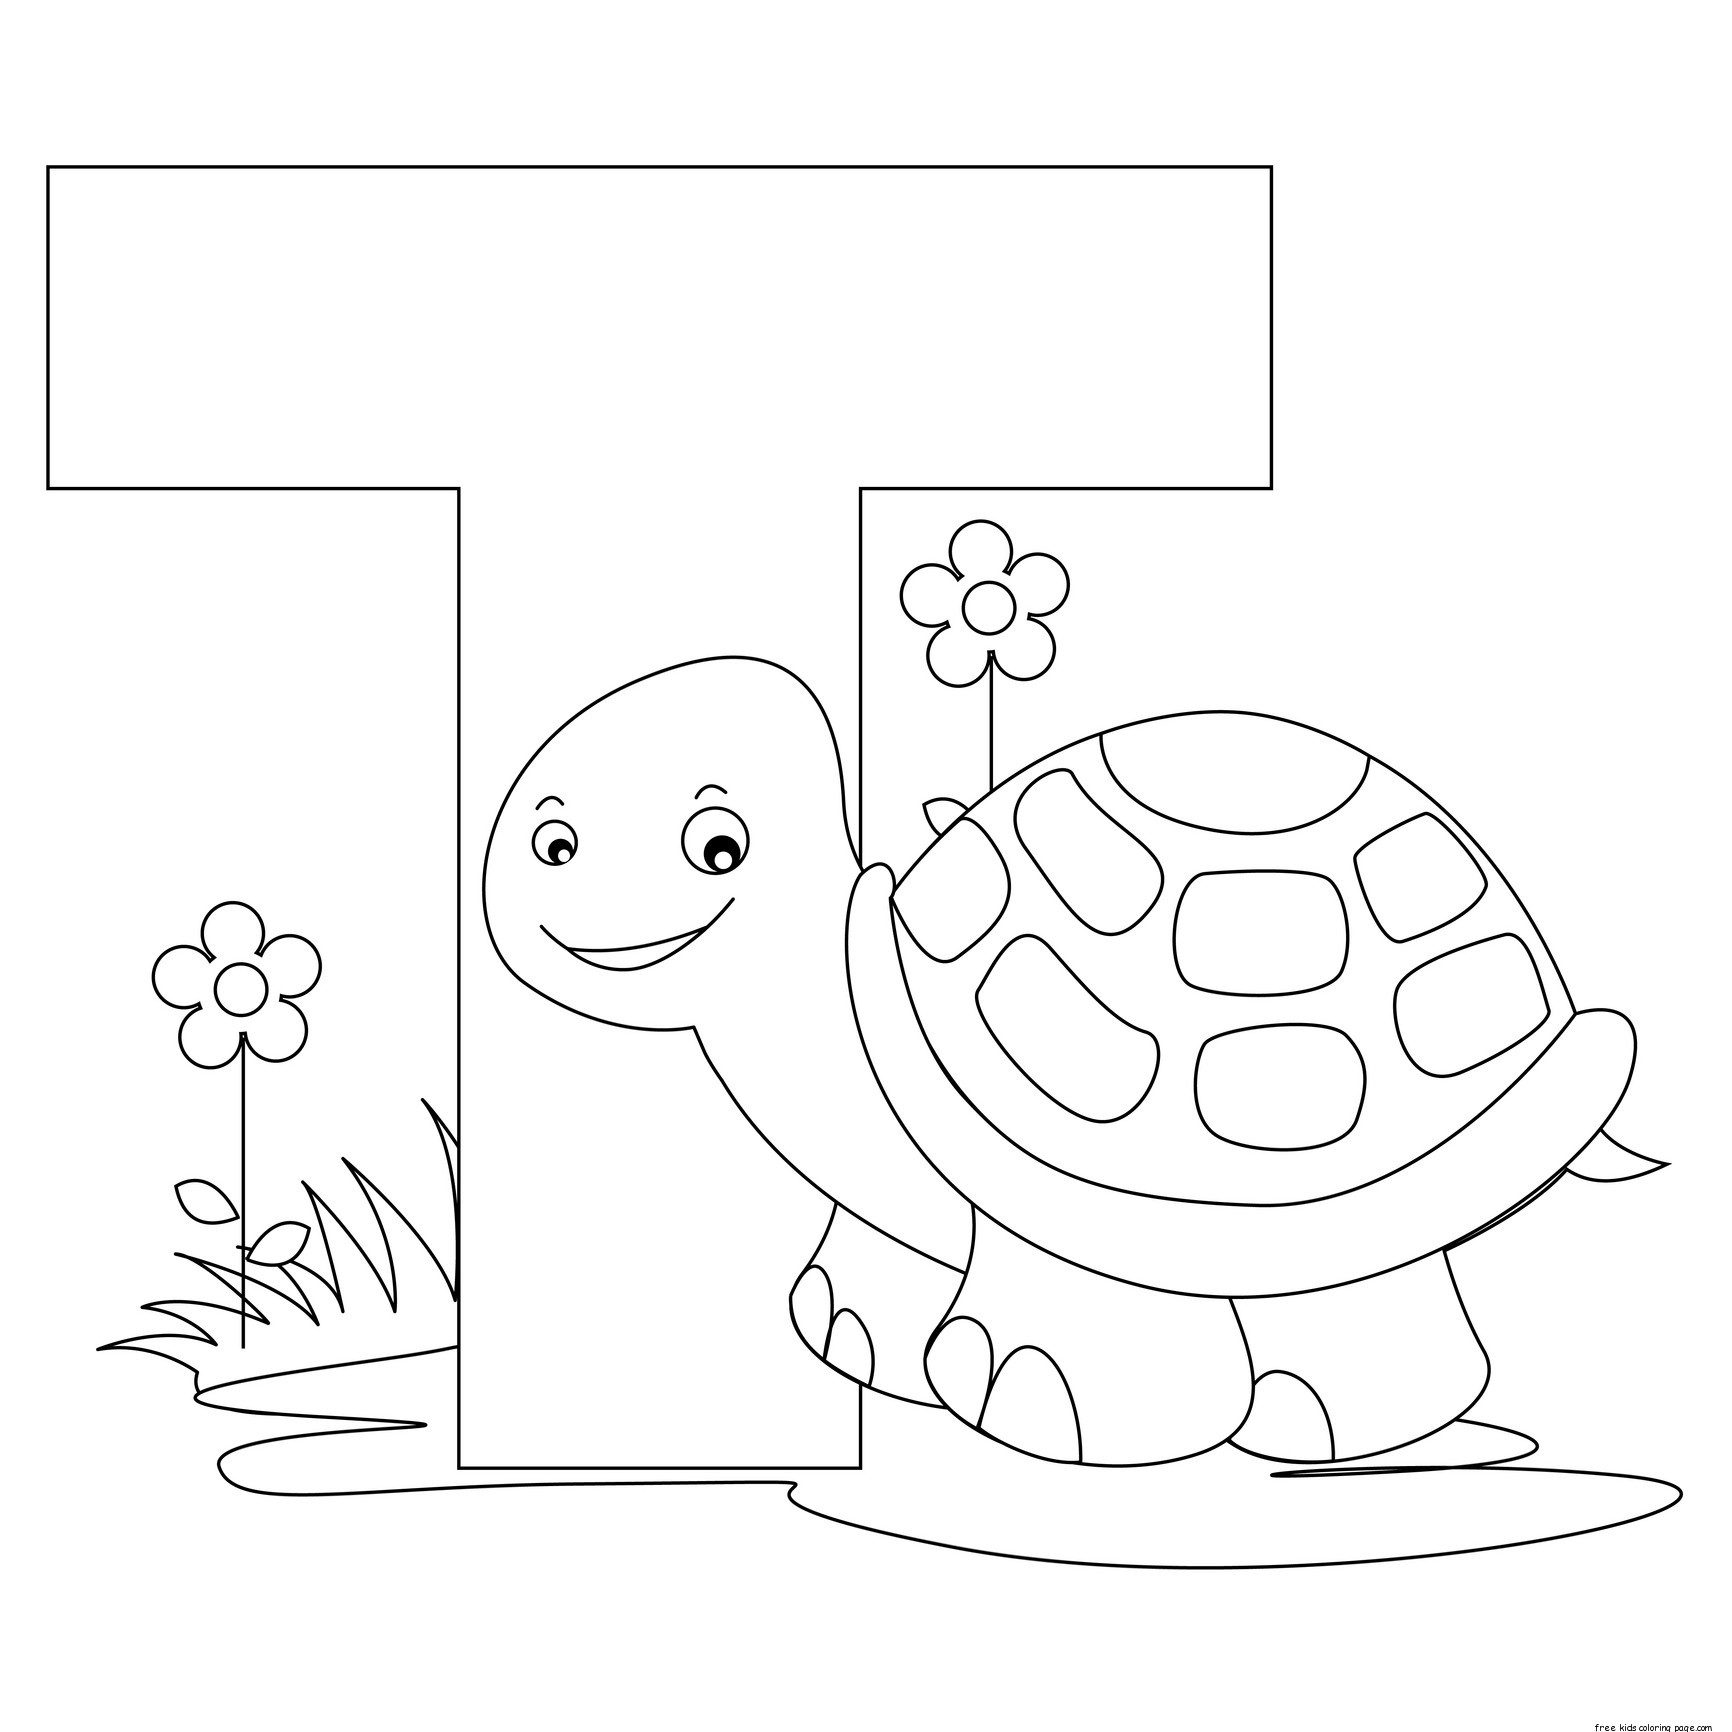 free alphabet coloring pages alphabet with funny letters coloring pages coloring home coloring pages free alphabet